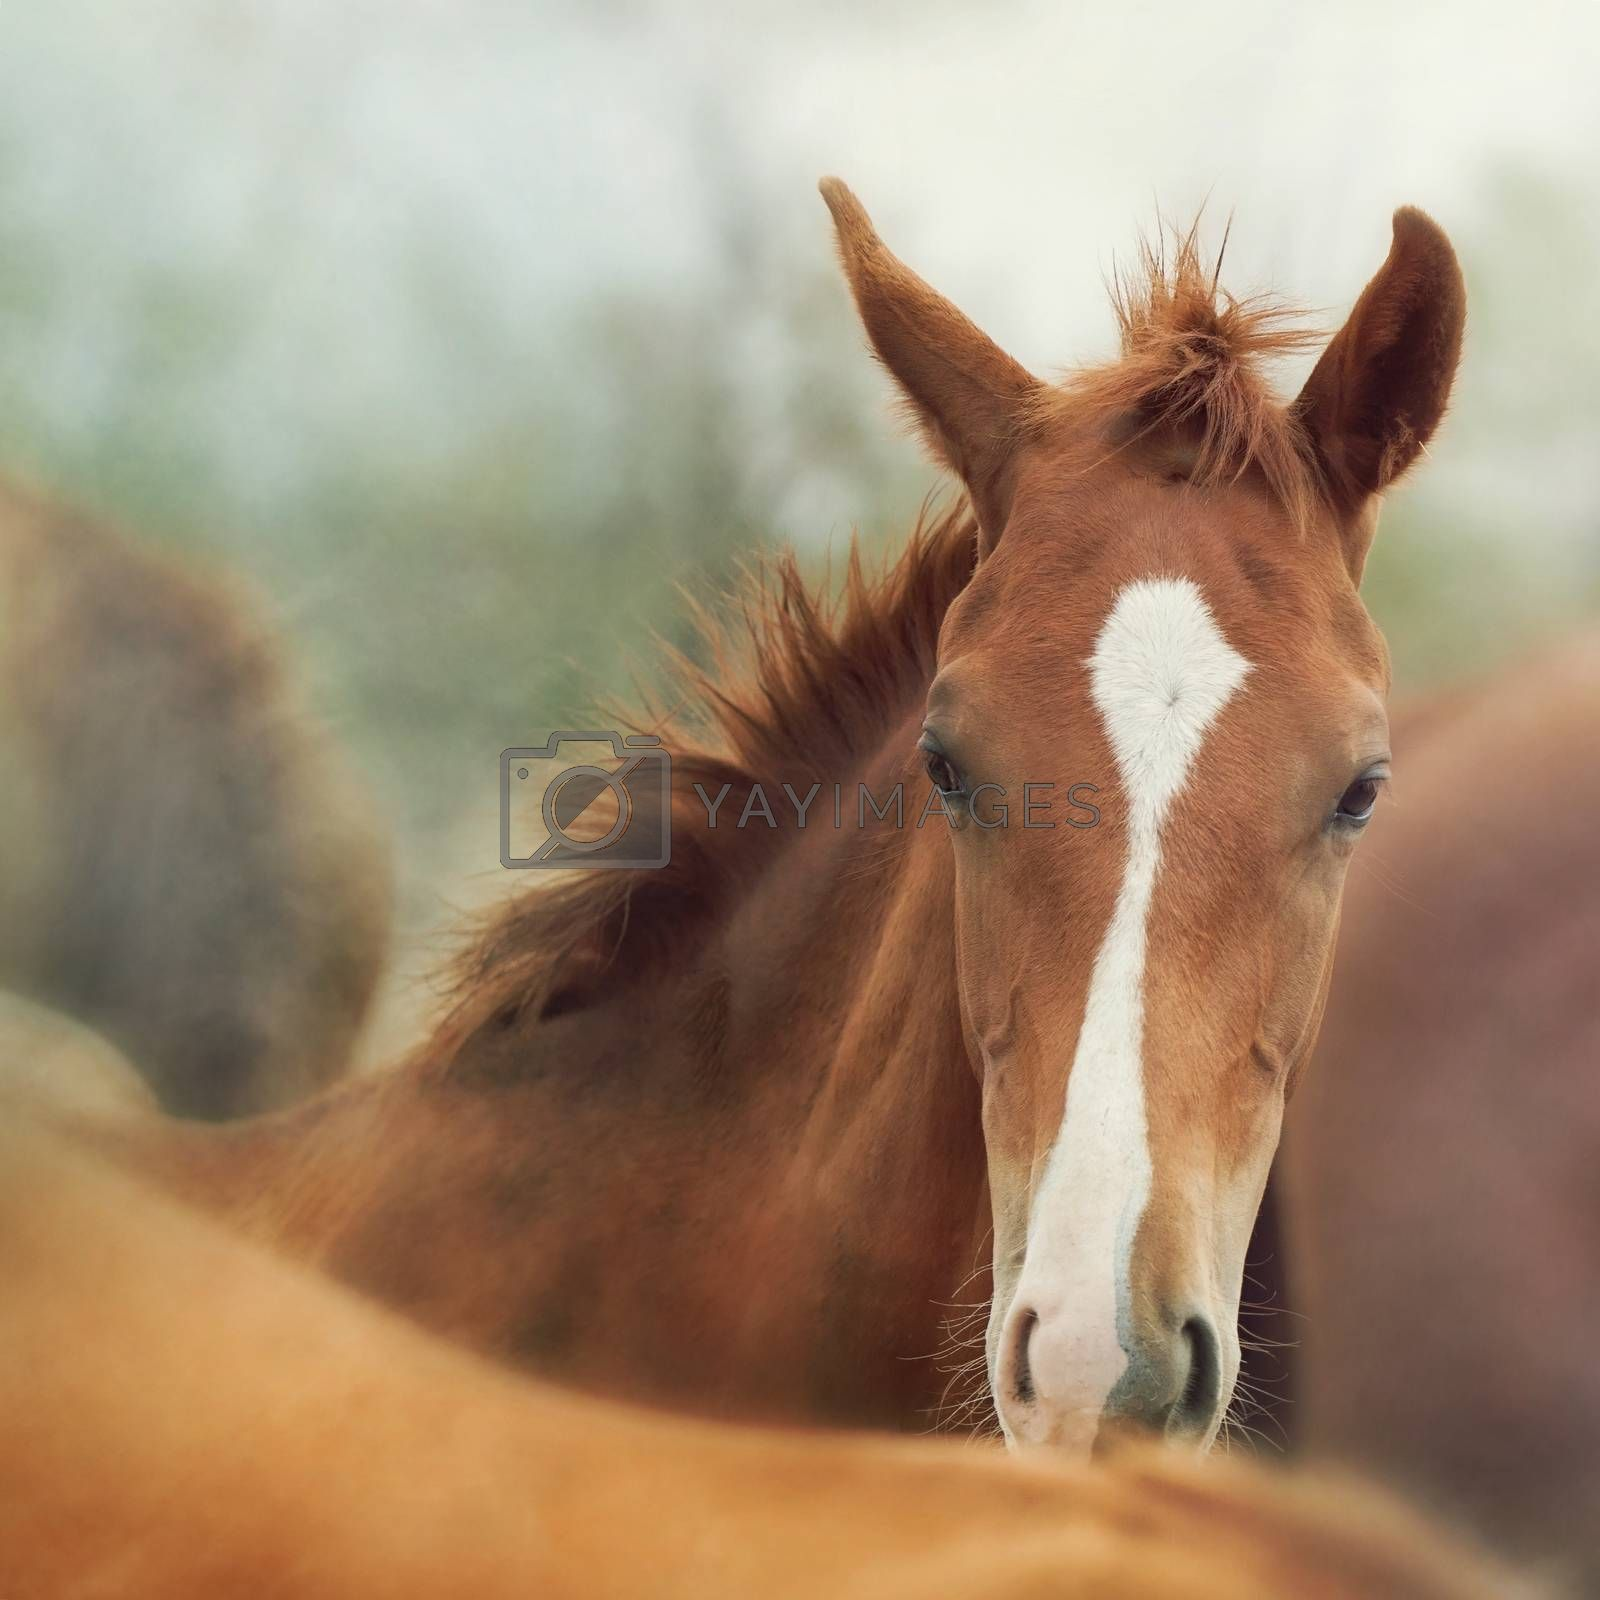 Portrait of a cute foal